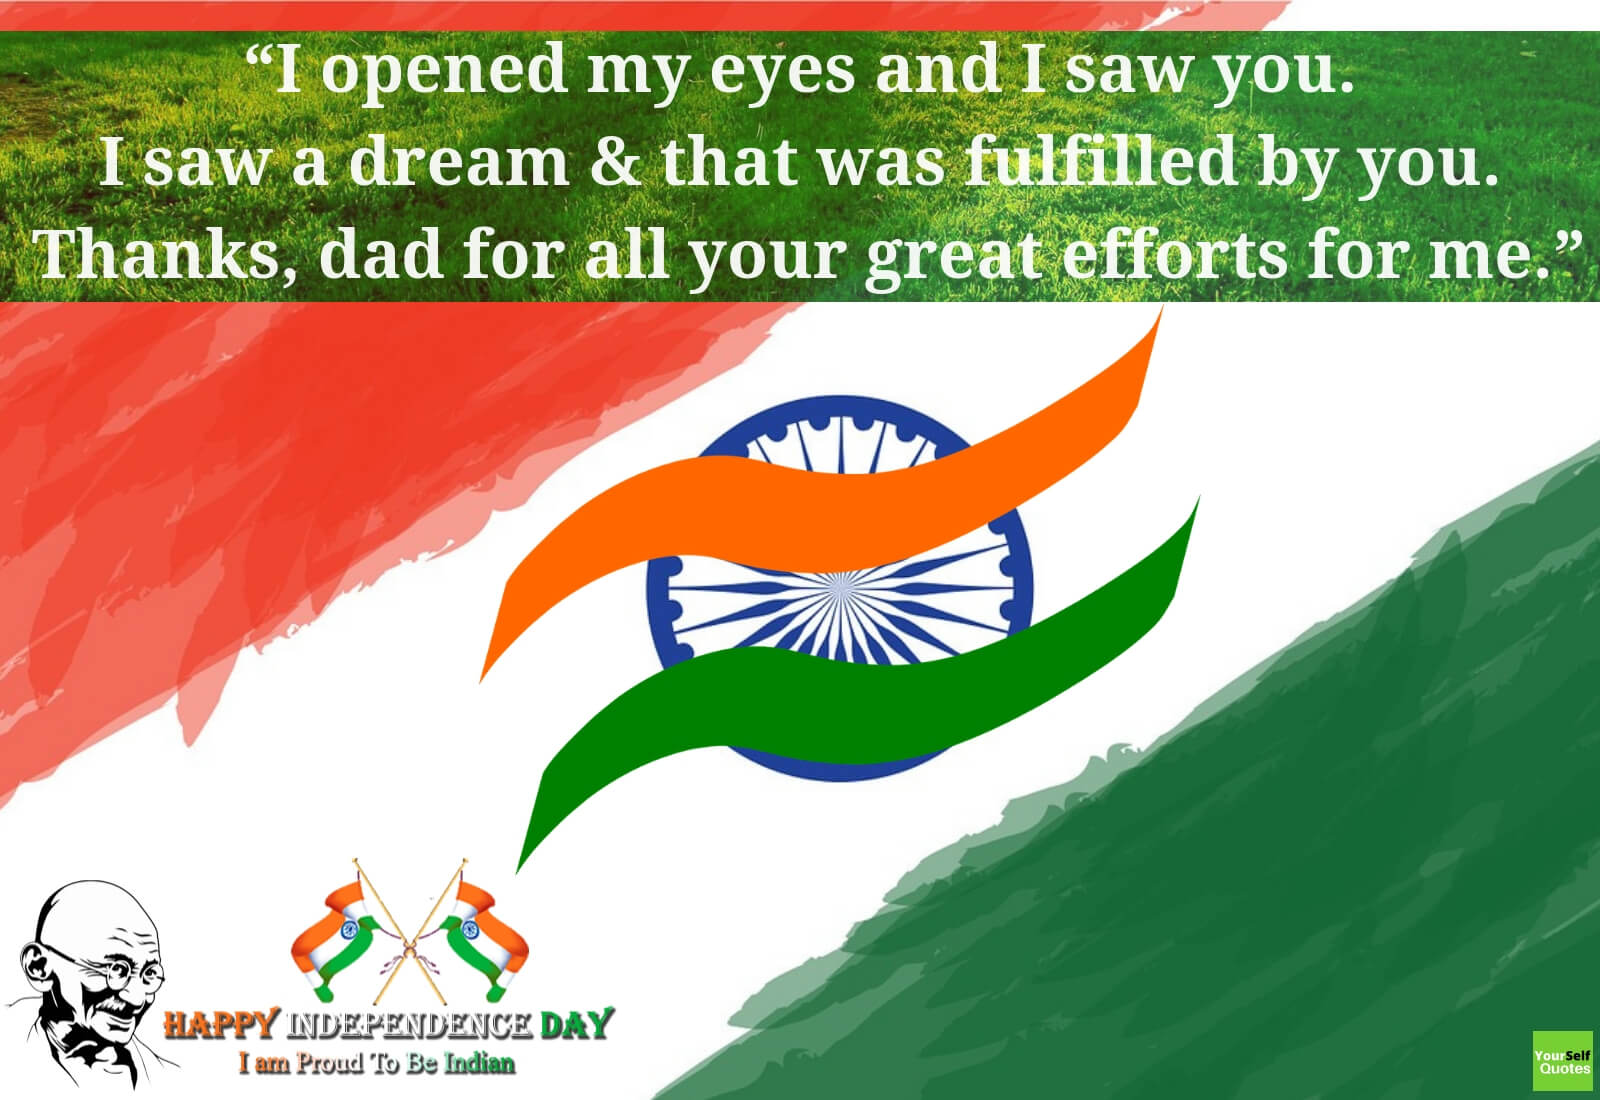 Best wishes for Independence Day